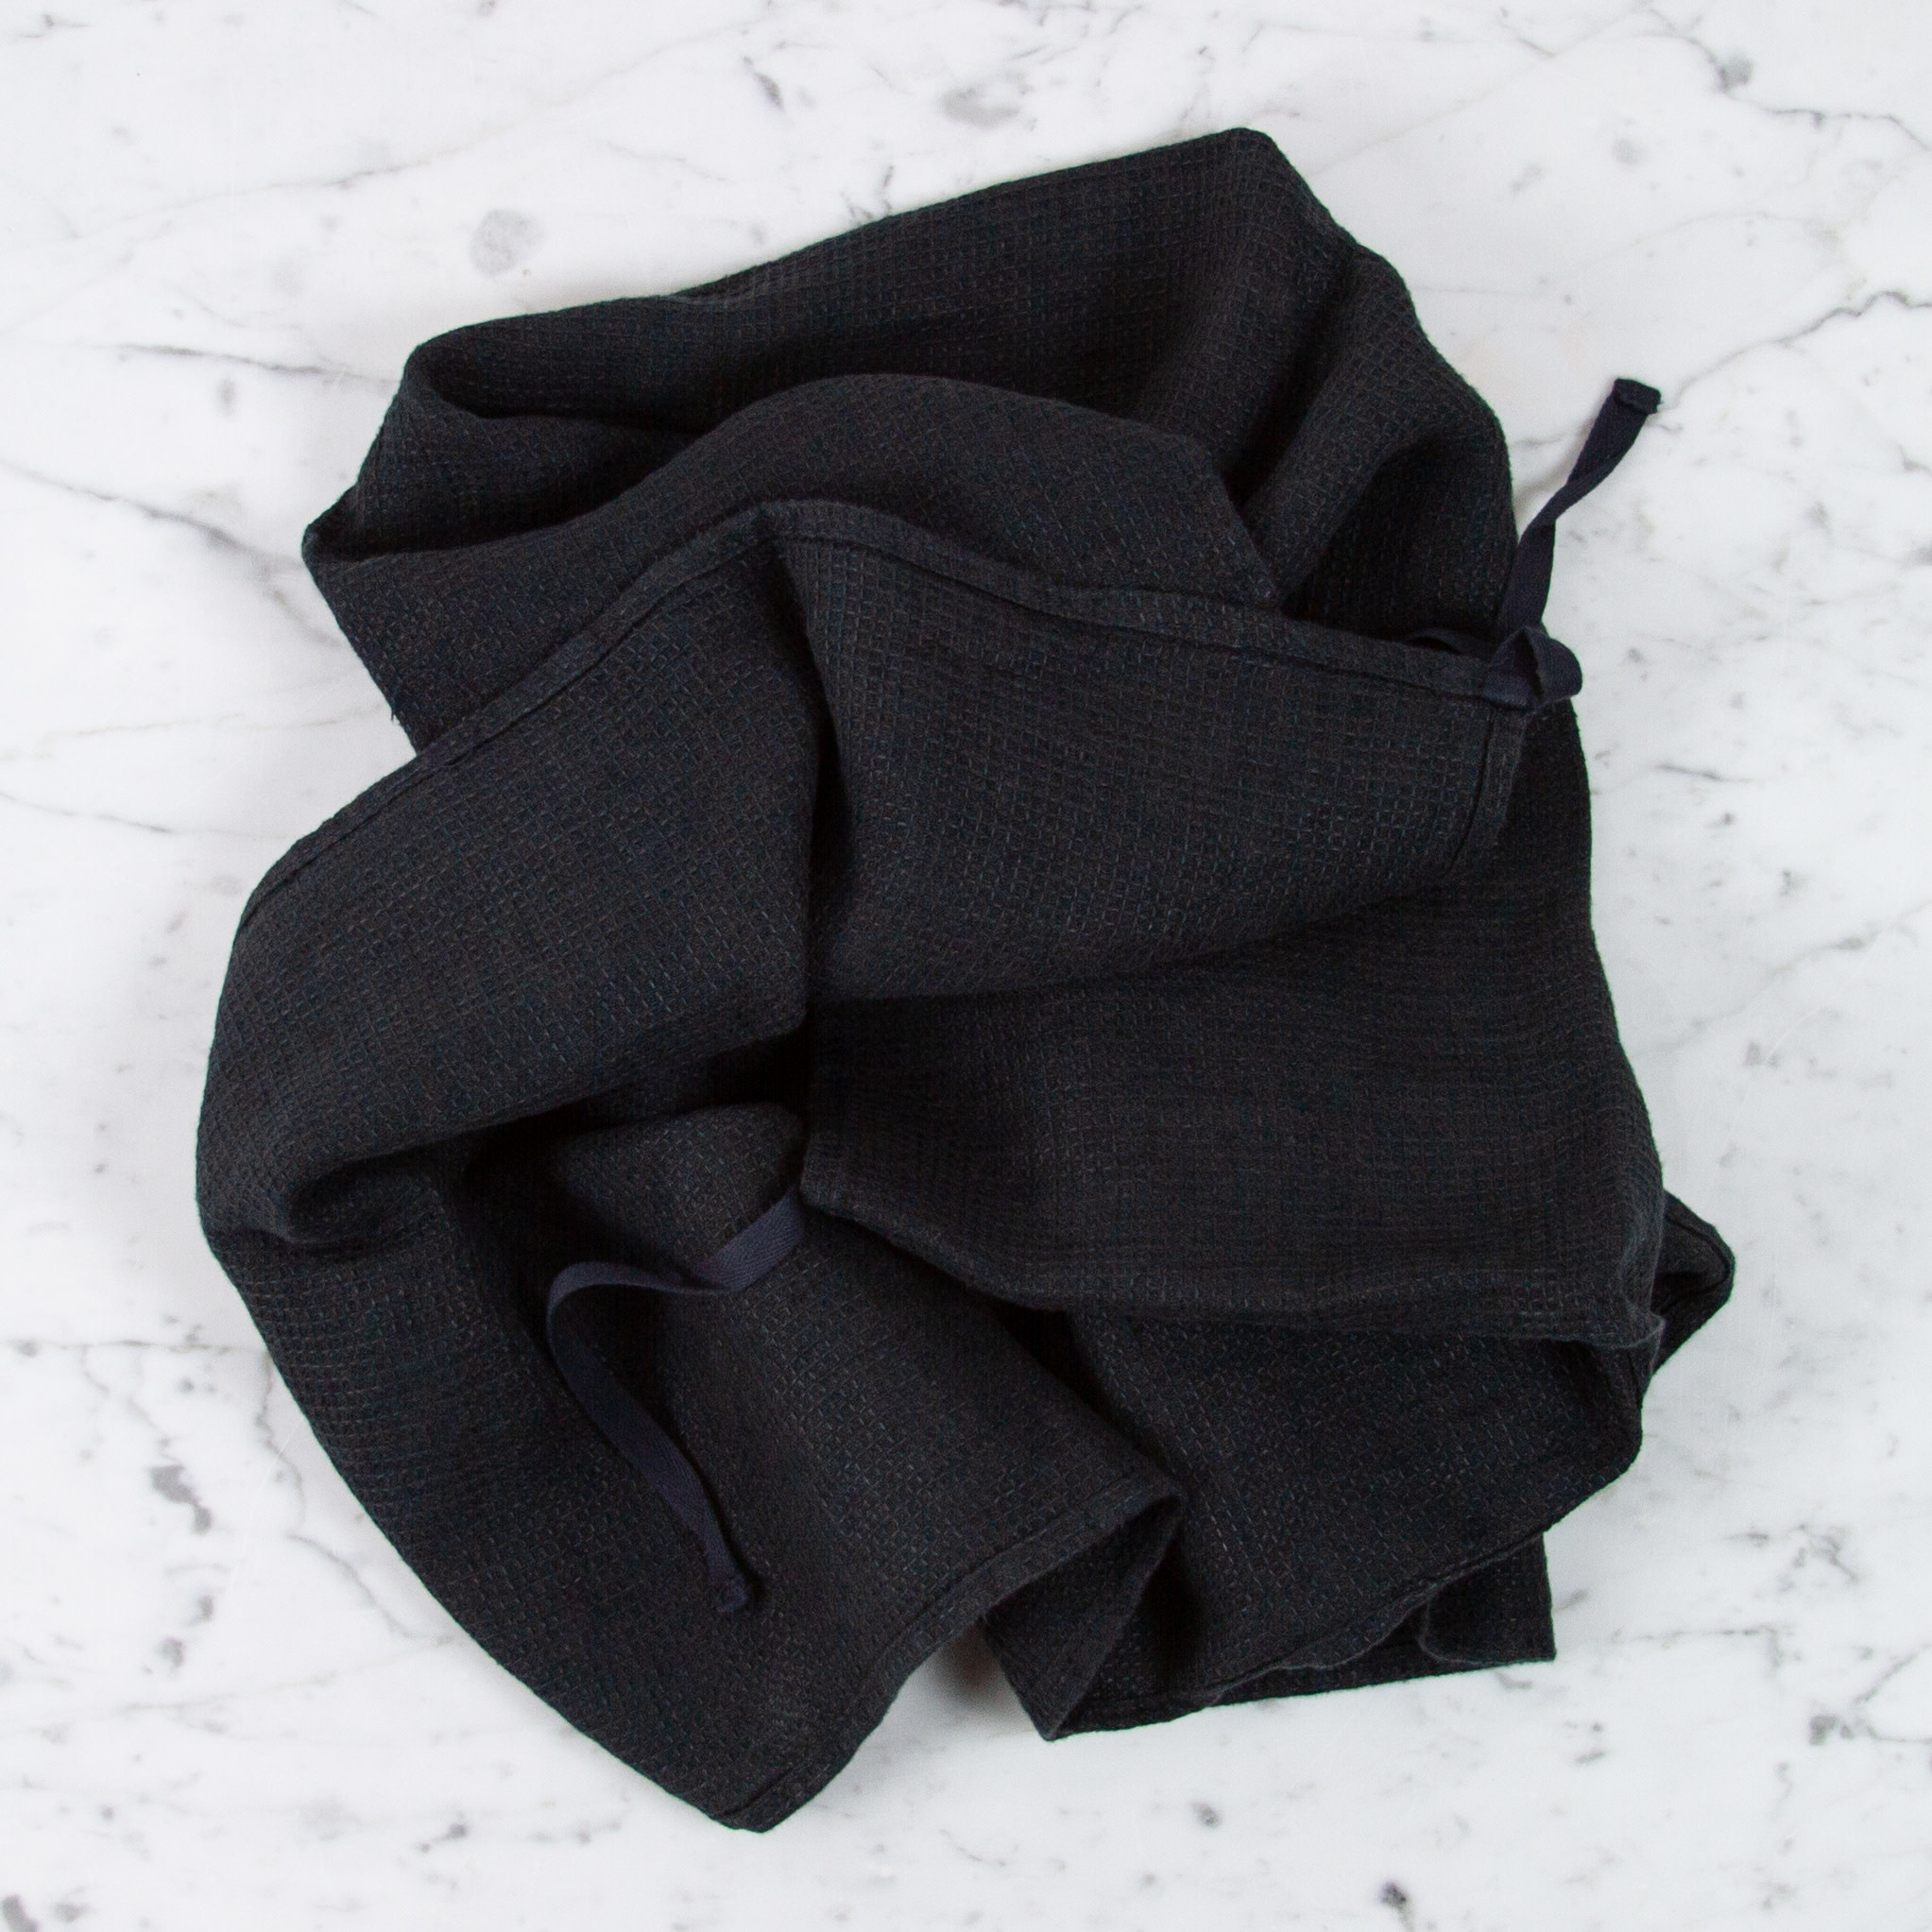 Light Washed French Linen Waffle Dish or Hand Towel with Hidden Apron Strings - Black 31.5 x 21.5in